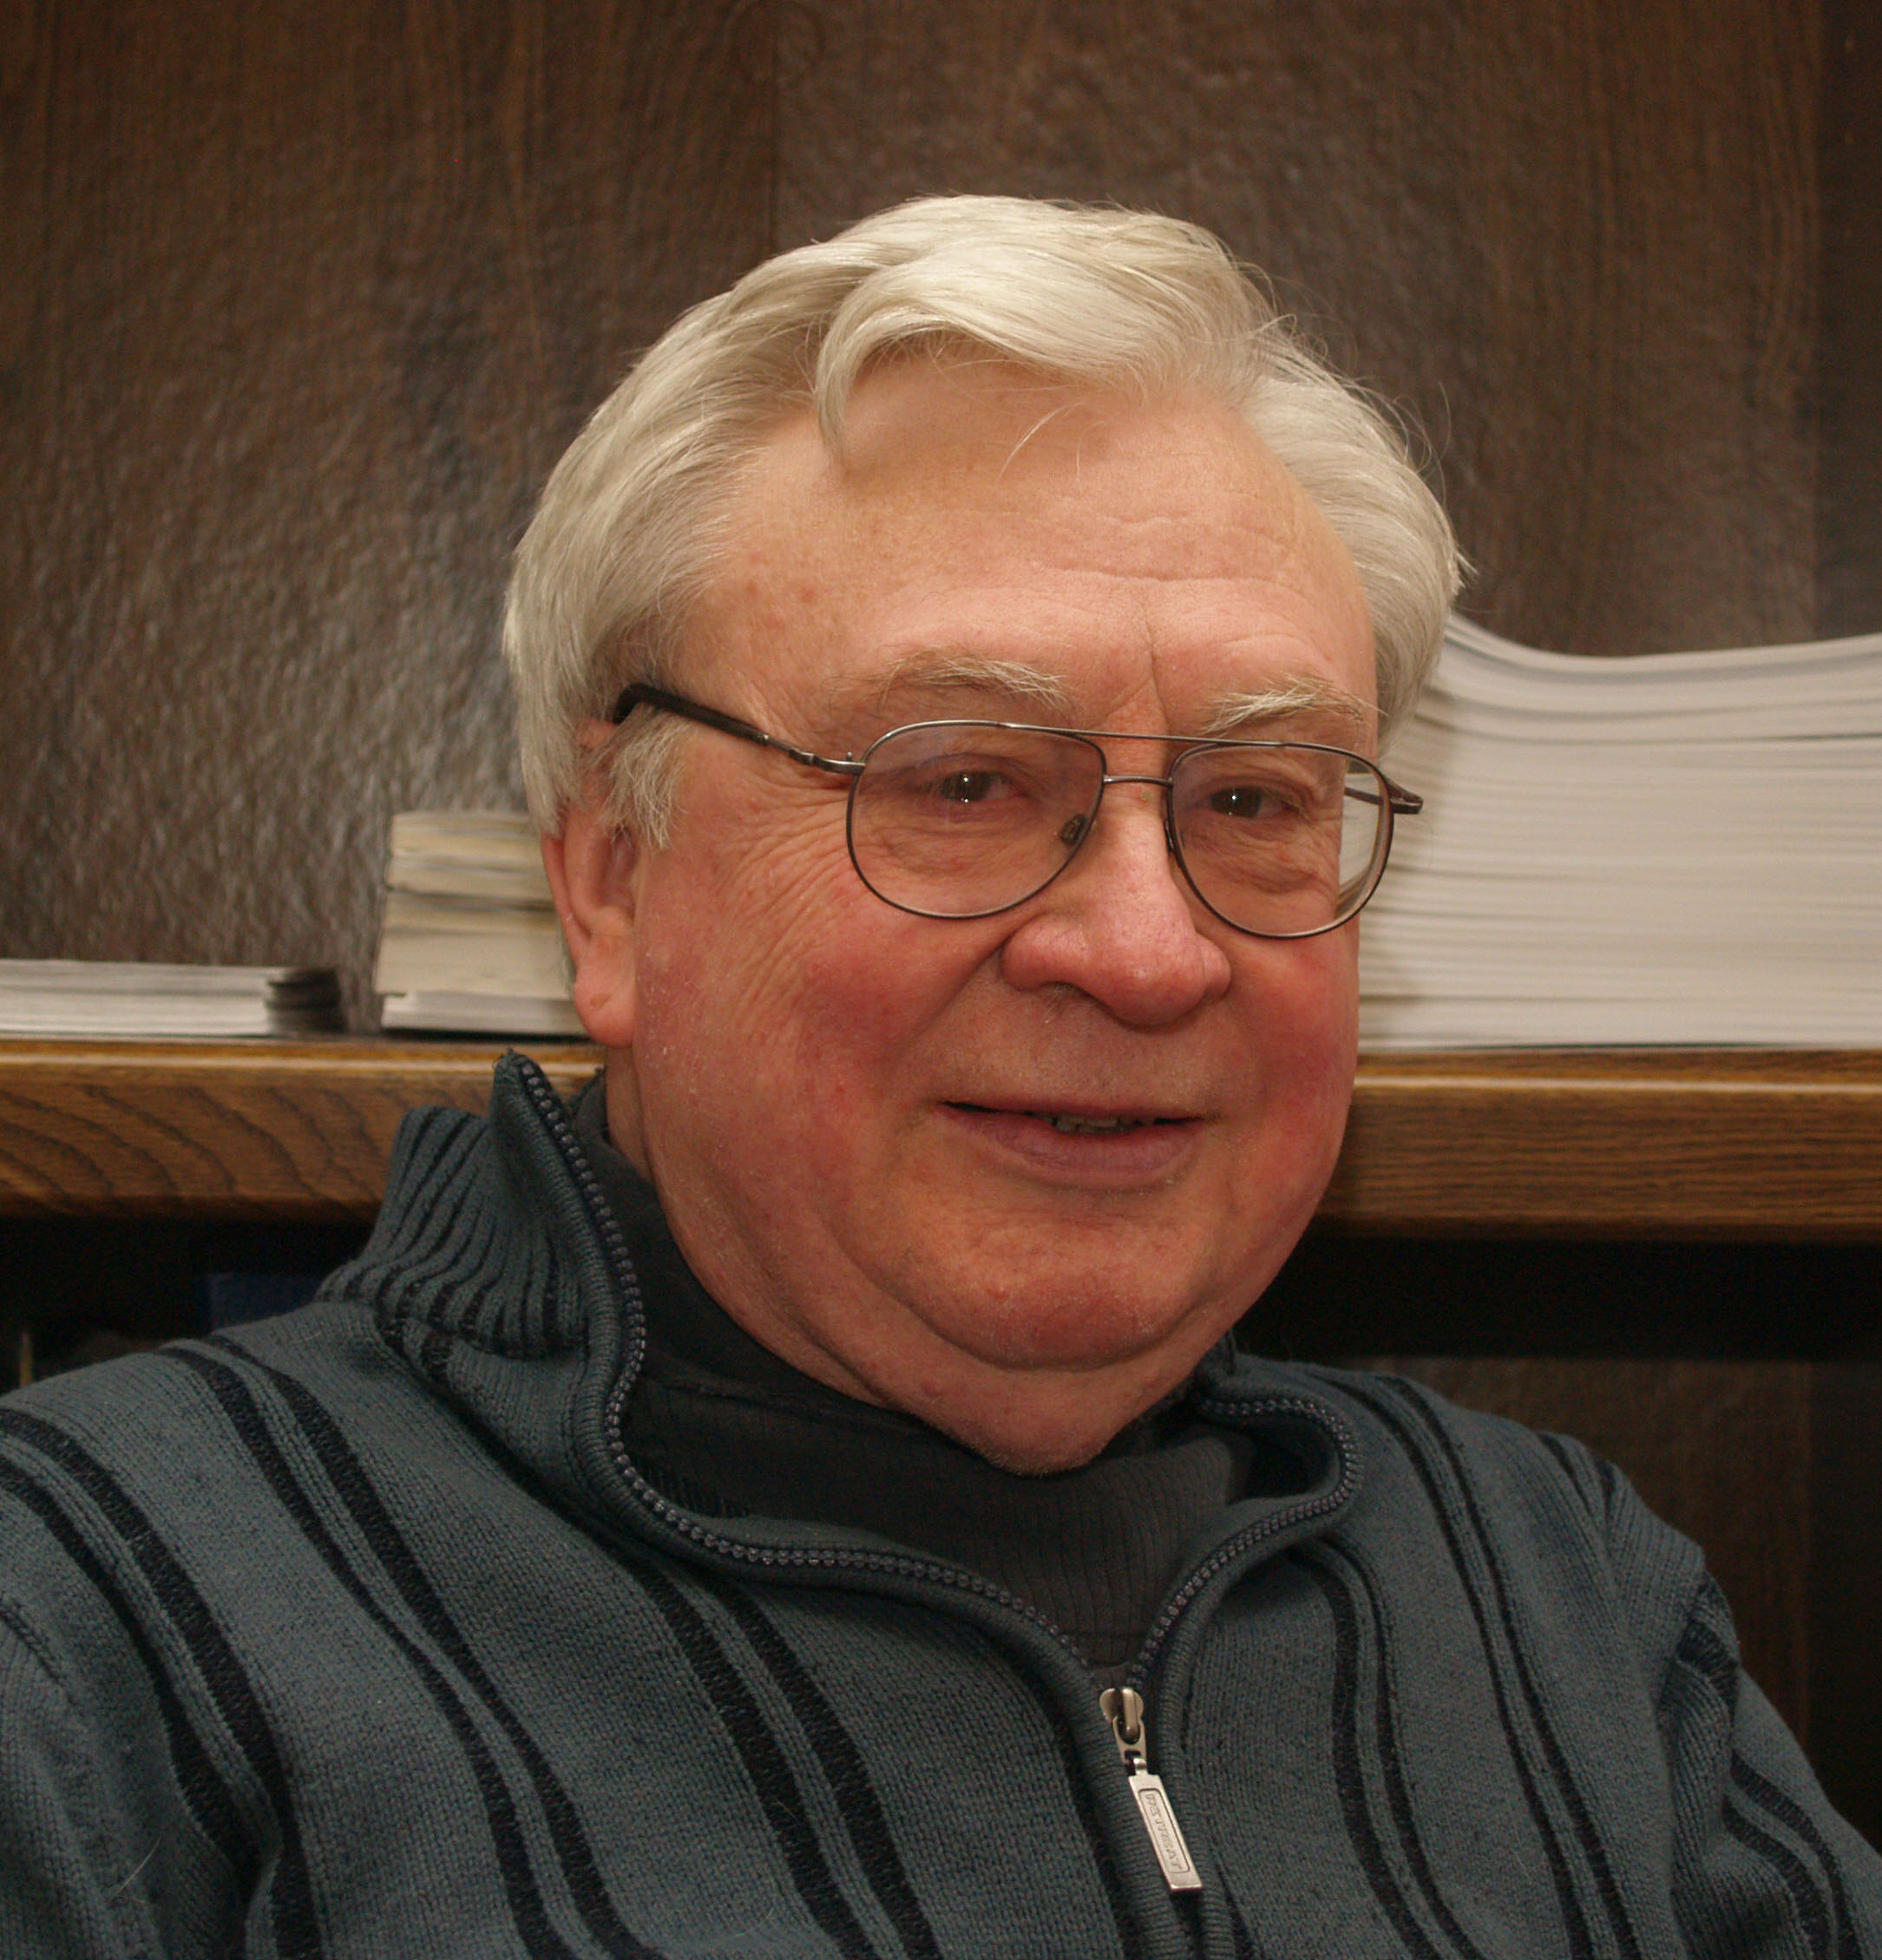 William F. Reynolds - SMASH 2014 James N. Shoolery Award Recipient